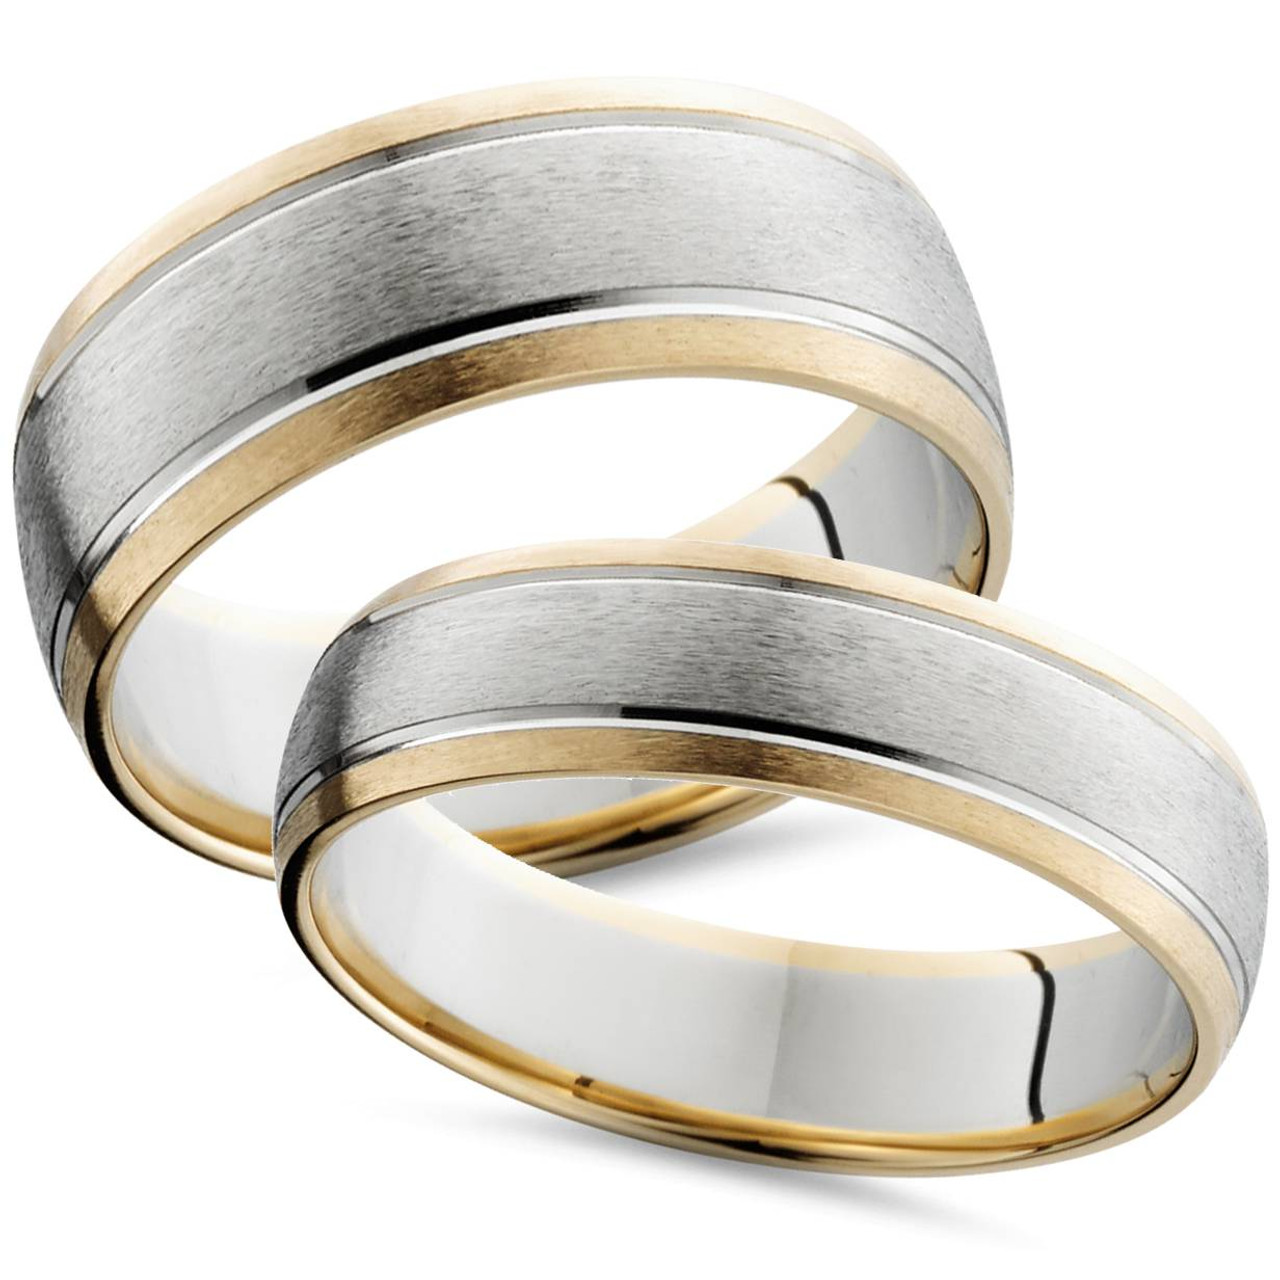 His And Hers Matching Wedding Bands Cheap.Two Tone 14k White Yellow Gold Matching Wedding Ring Set His Hers Brushed Band